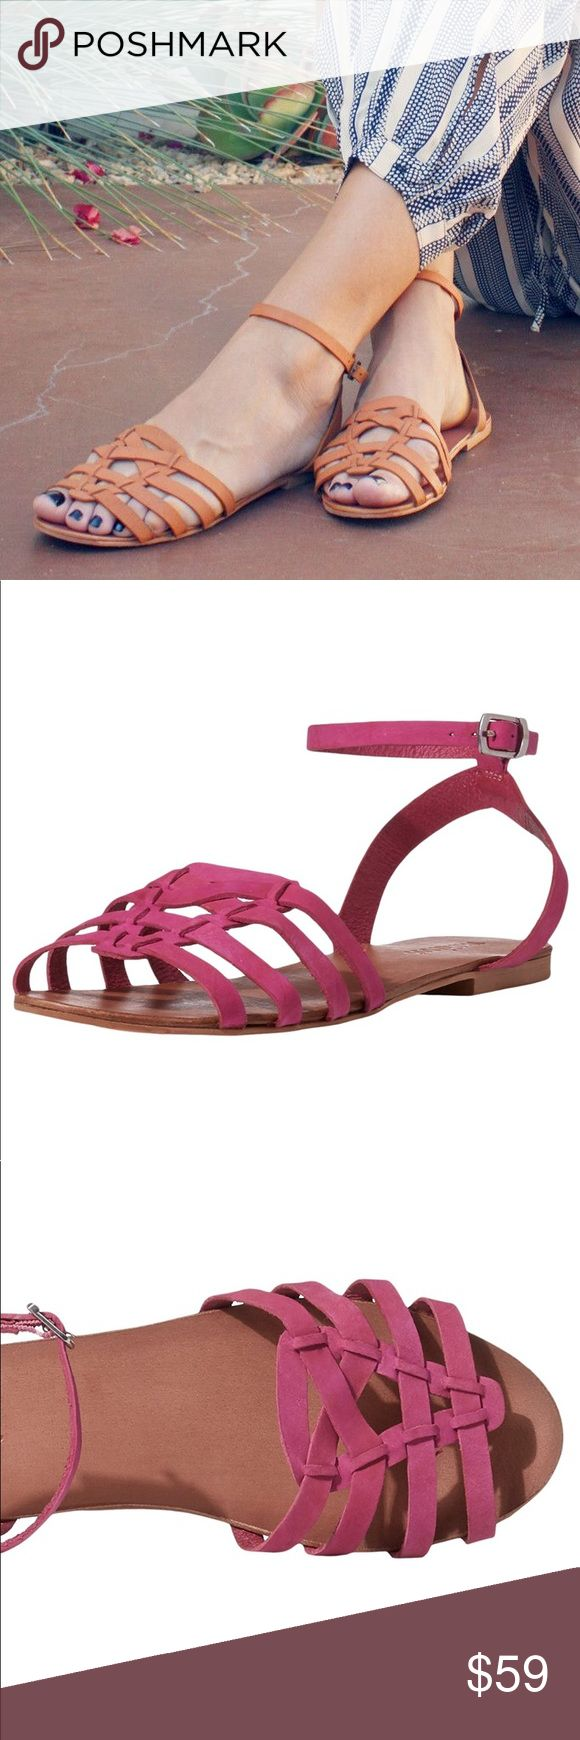 "Pink Open-Toe Leather Slingback Sandal Leather Color: Fuchsia Pink Measurements: 0.5"" heel Width: B(M) Imported by Matisse X Anthropology Anthropologie Shoes Sandals"